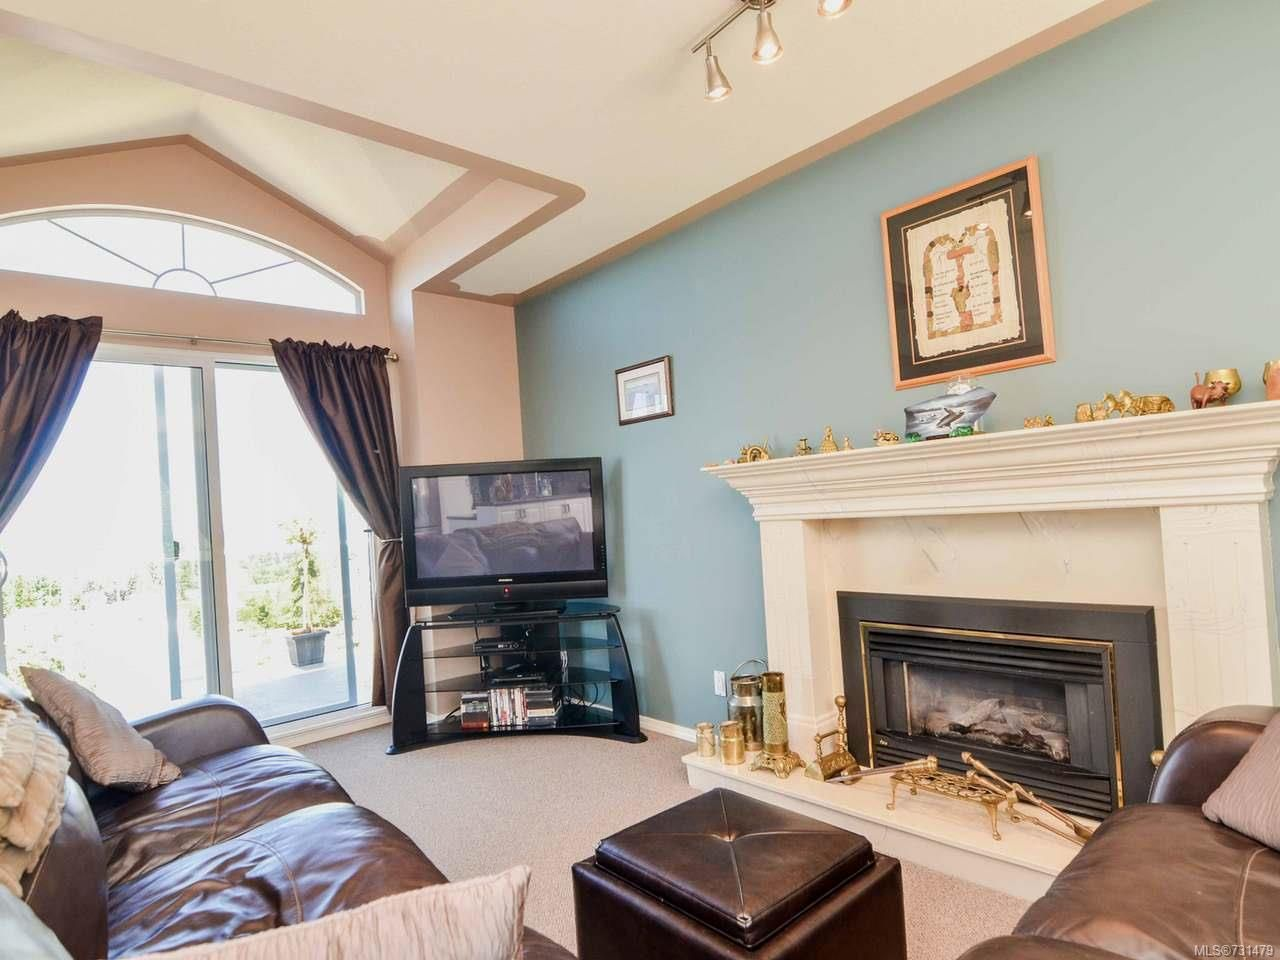 Photo 5: Photos: 753 Bowen Dr in CAMPBELL RIVER: CR Willow Point House for sale (Campbell River)  : MLS®# 731479